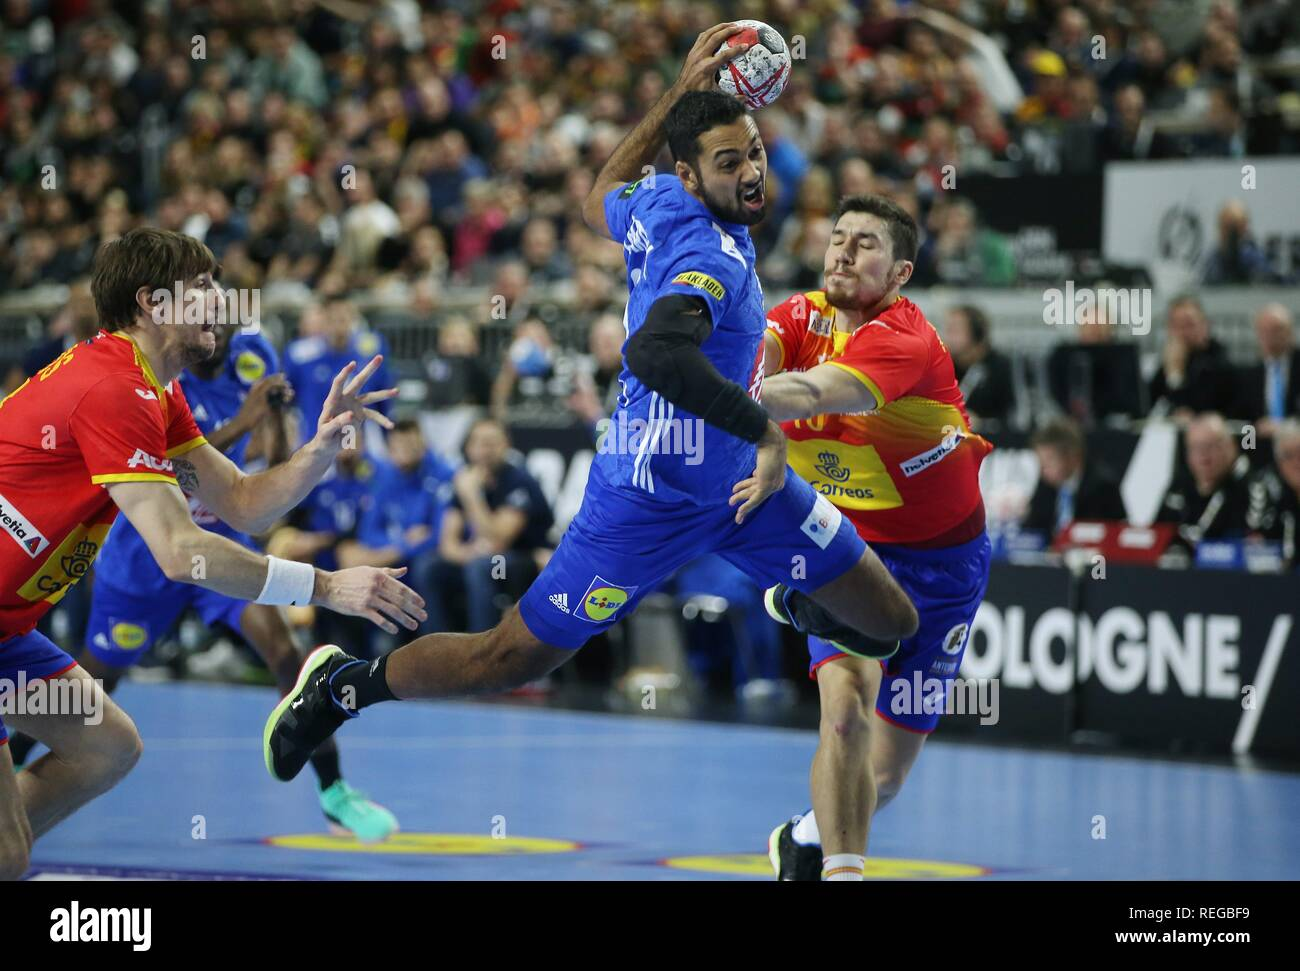 firo: 19.01.2019, Handball: World Cup World Cup Main Round France - Spain | usage worldwide - Stock Image